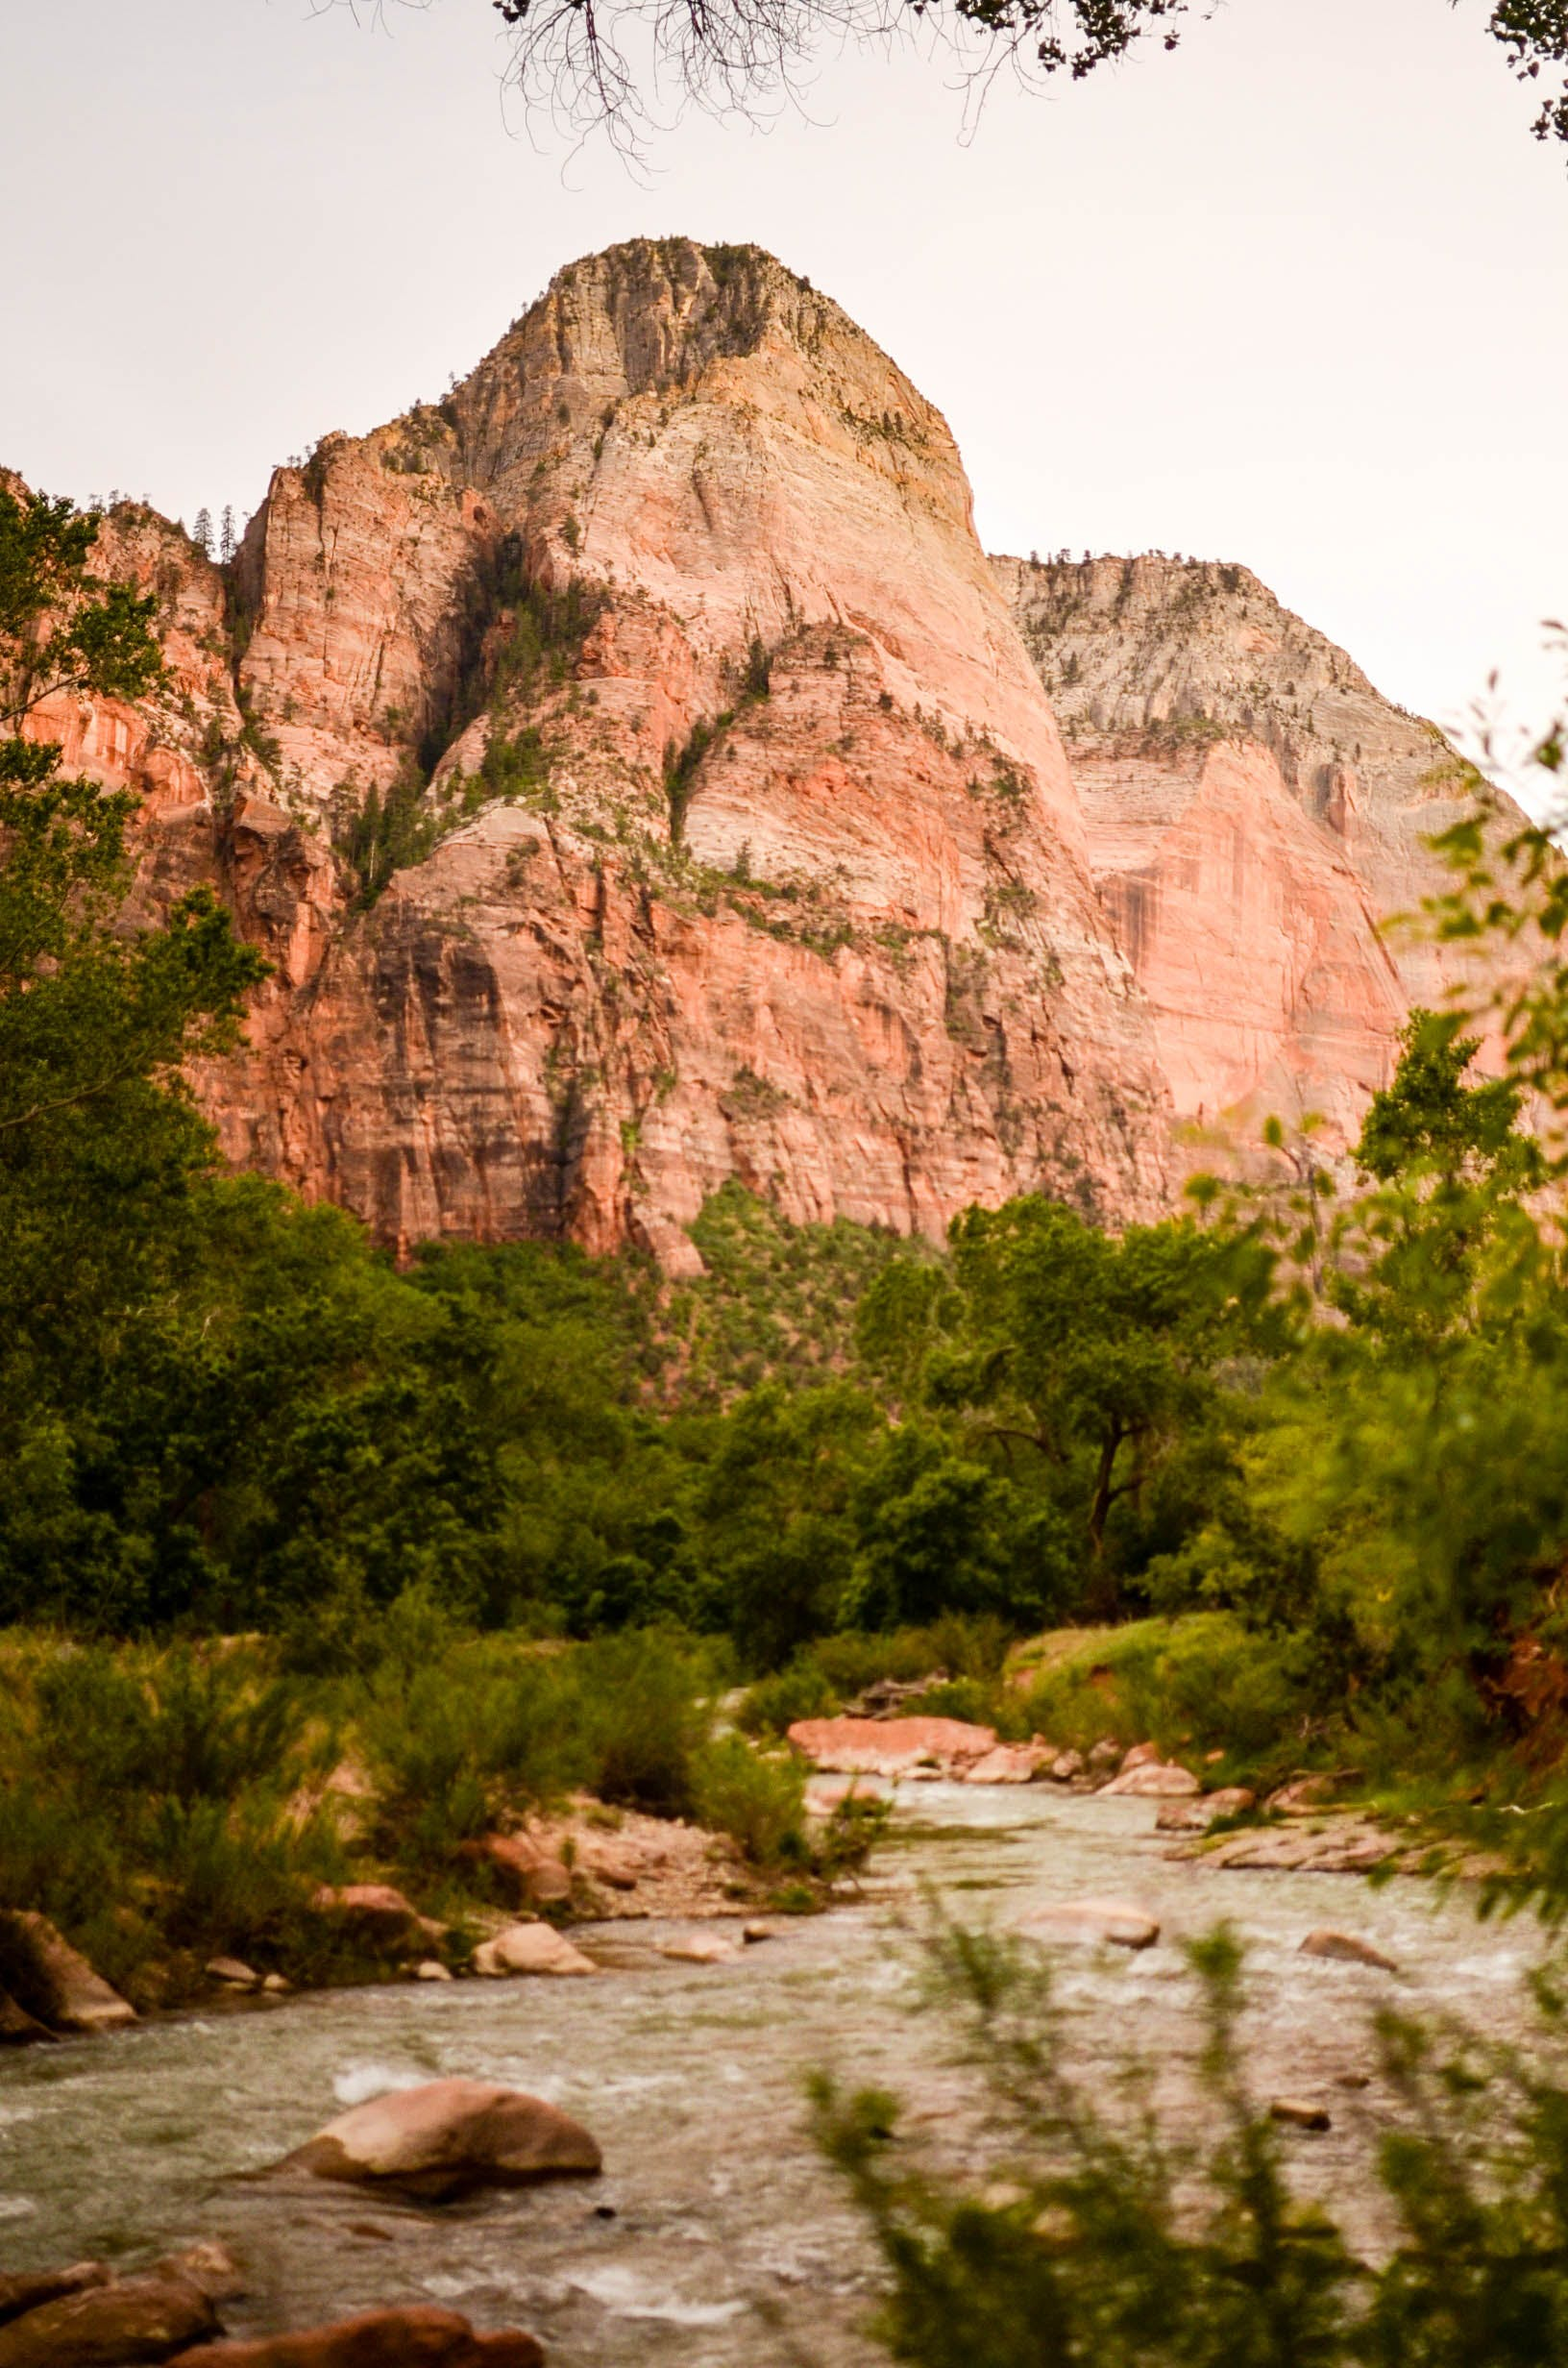 Free stock photo of mountain, national park, river, trees